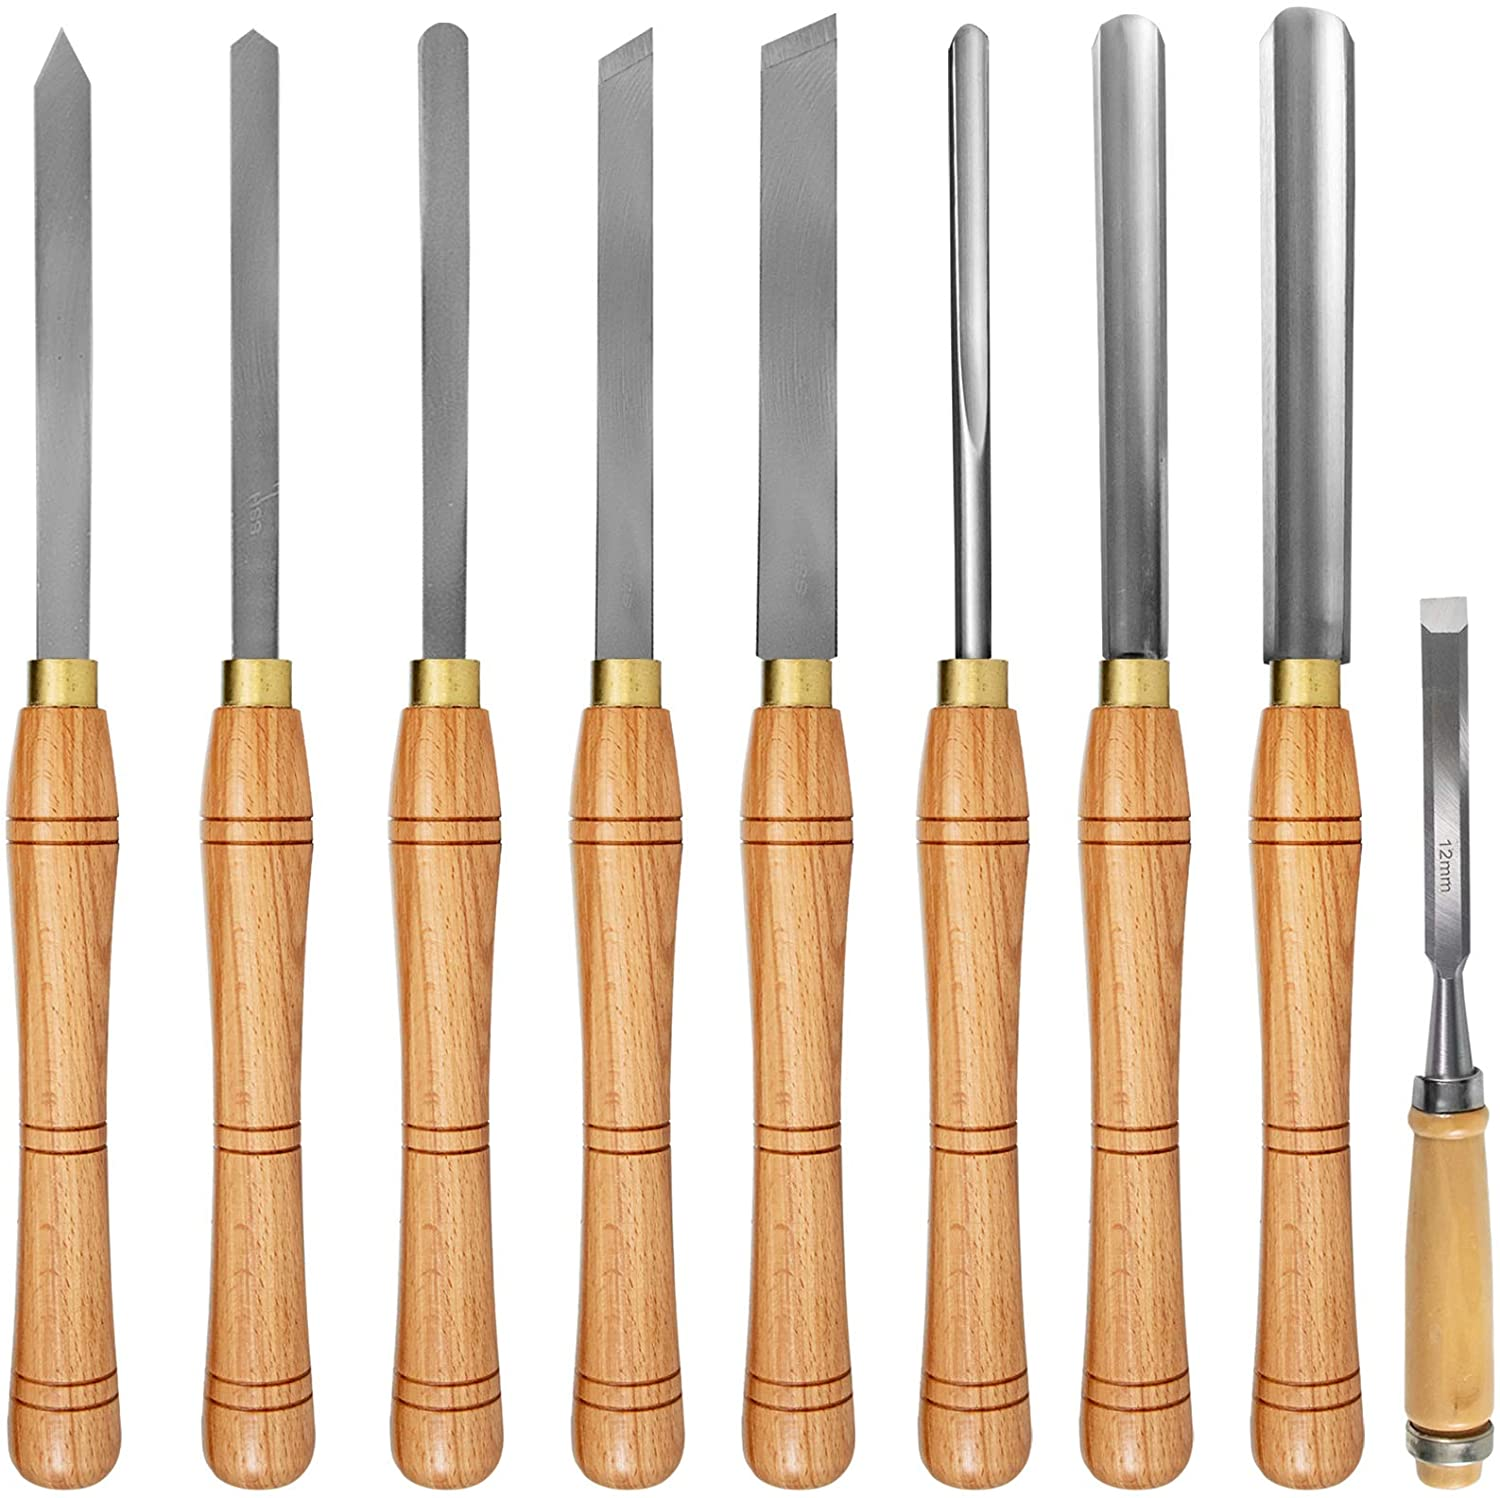 Mophorn Woodworking 8 Pcs Cuttin Max 71% OFF Wood Cash special price Chisel Lathe